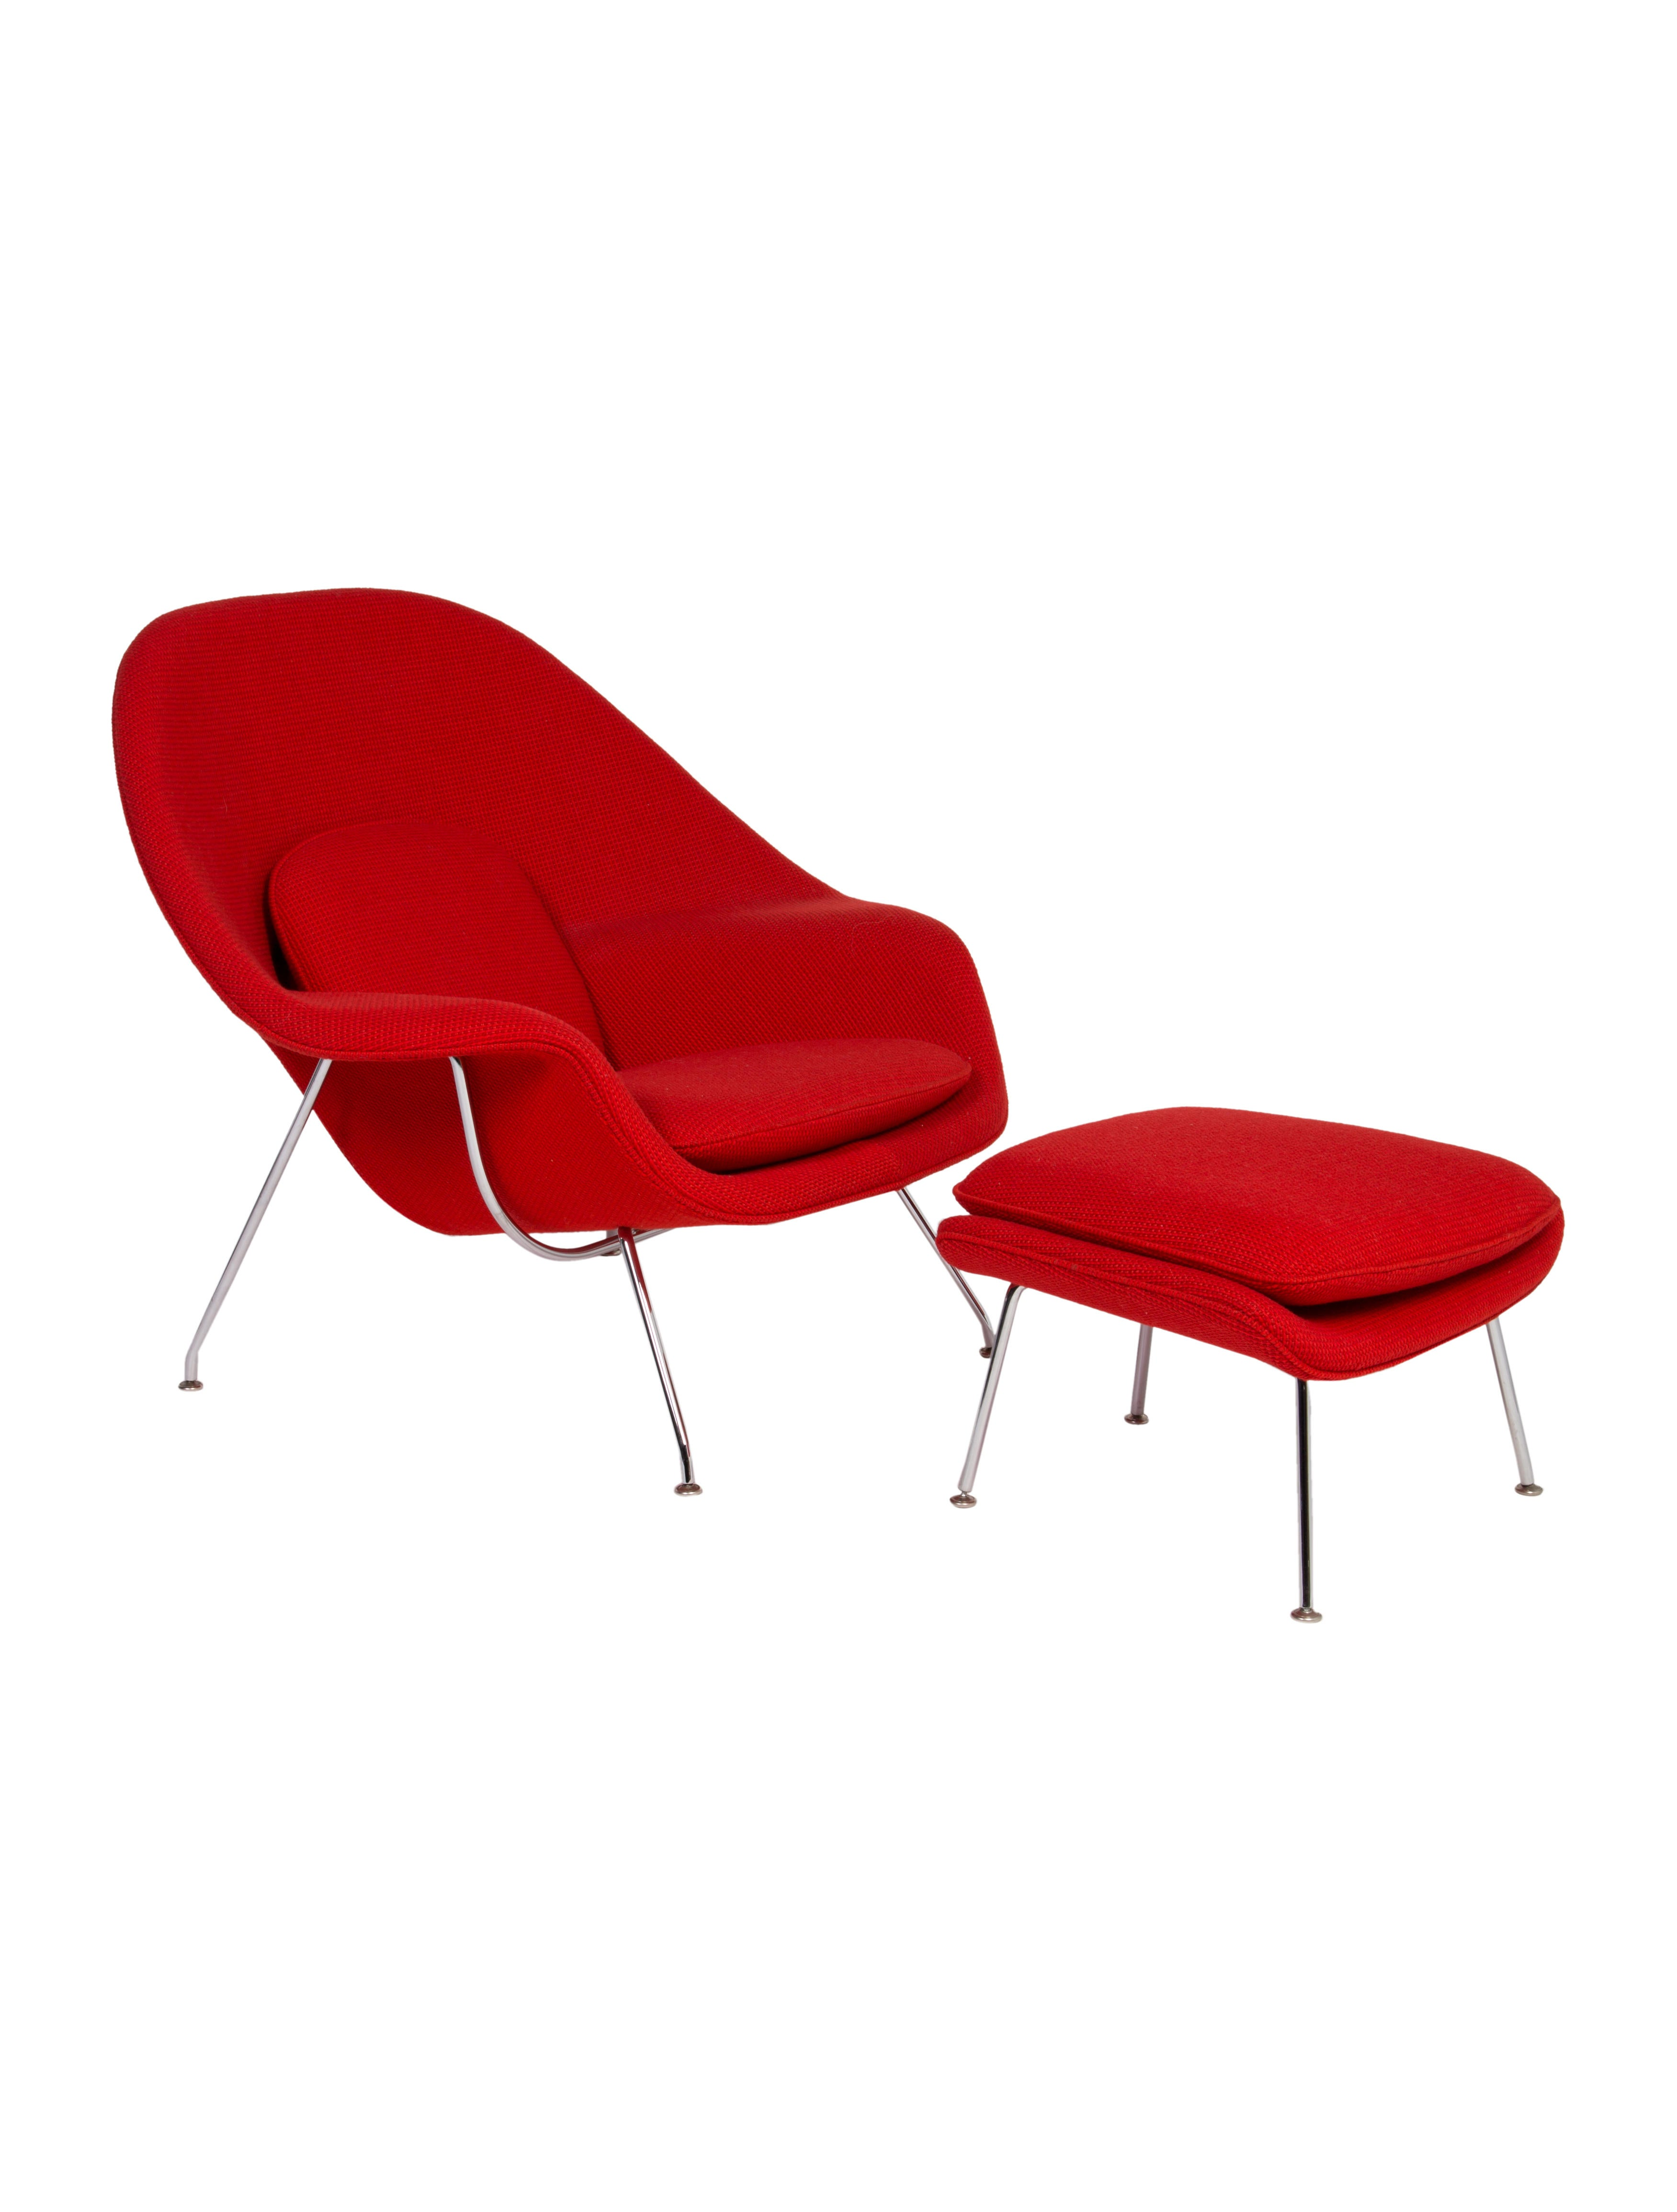 Knoll Womb Chair With Ottoman Furniture Knl20120 The